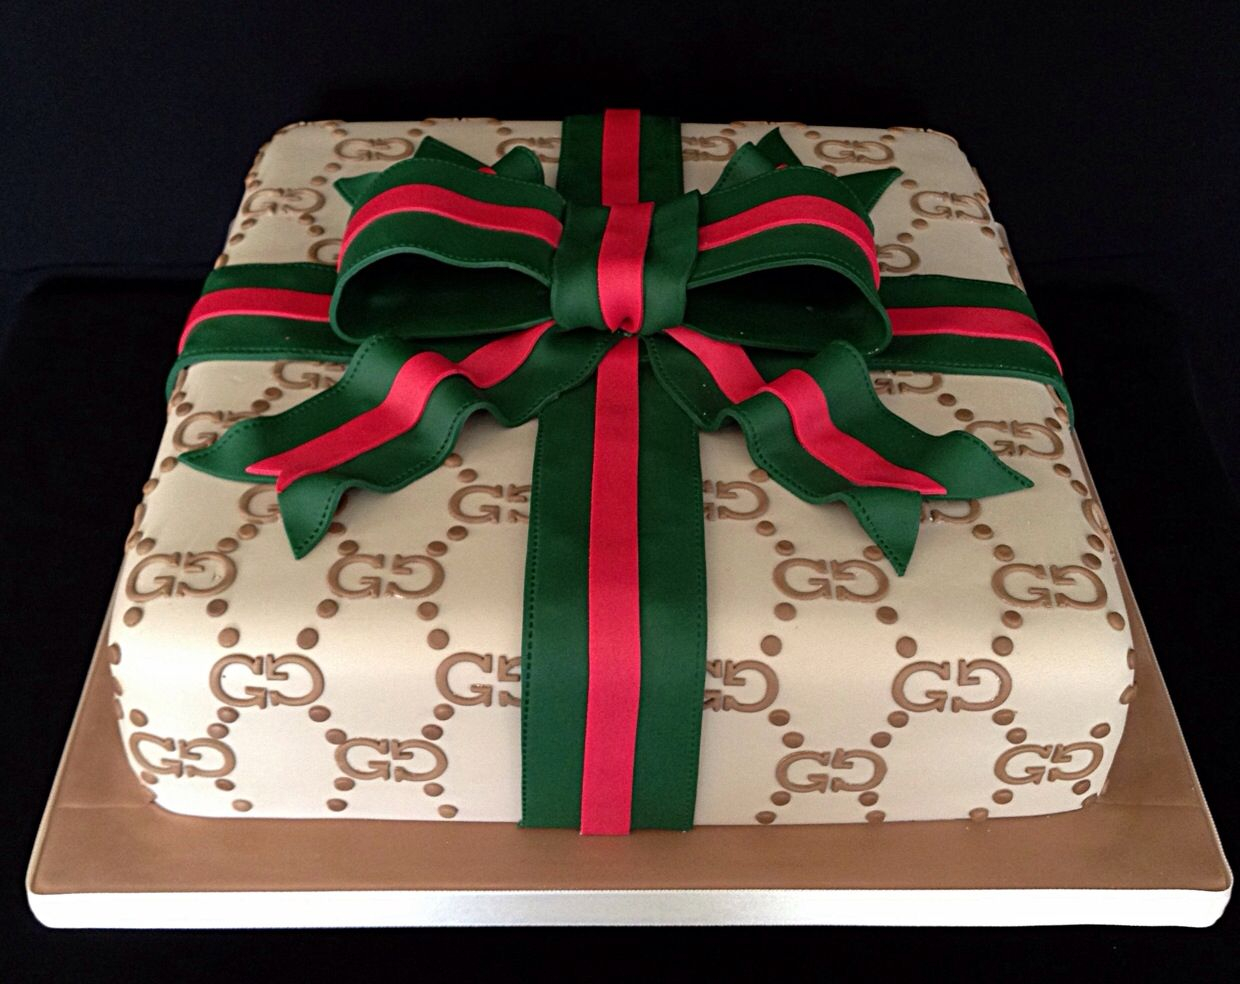 34+ Beautiful Photo of Gucci Birthday Cake